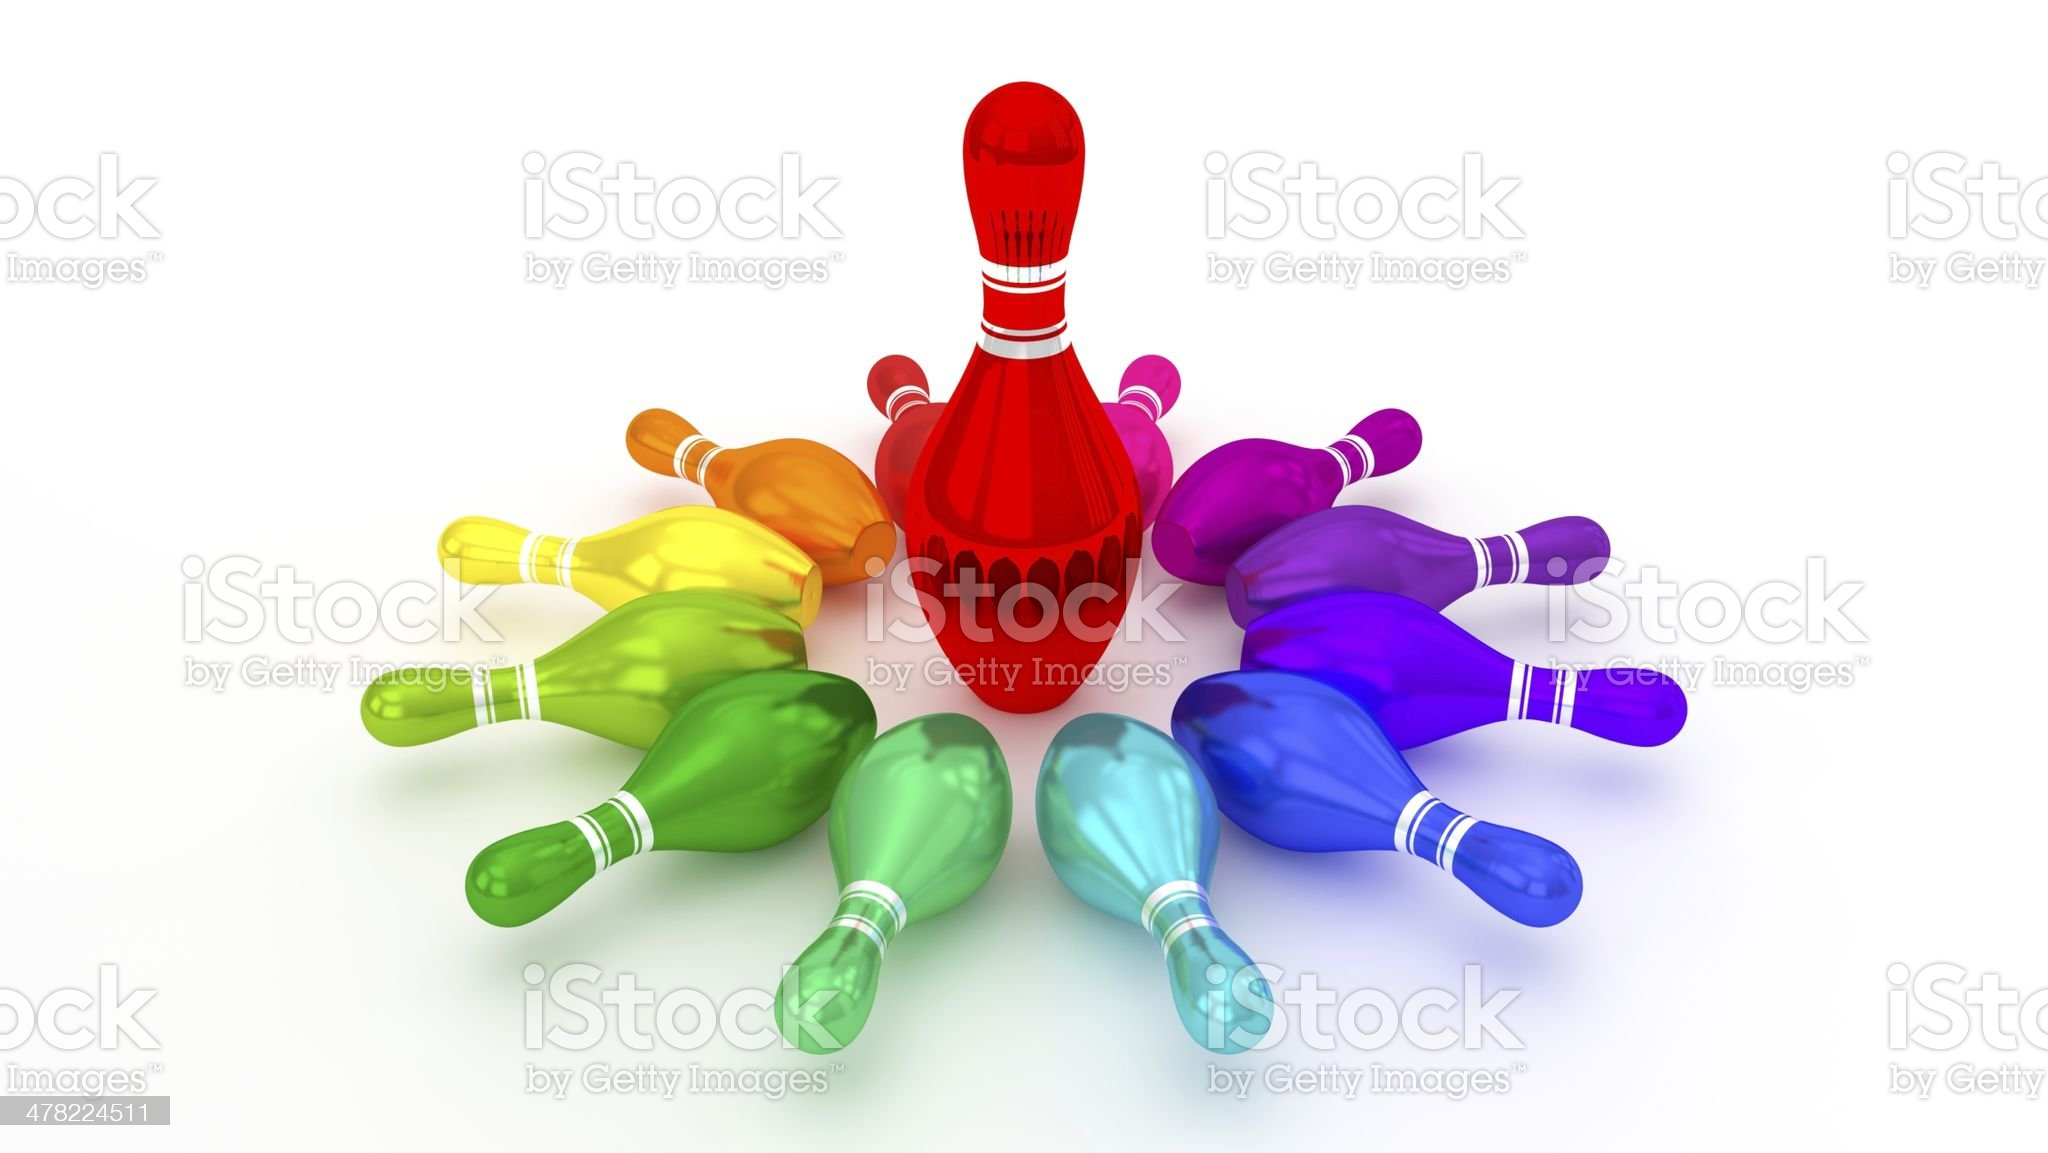 Bowling Pin Rotating at the Center on White Background royalty-free stock photo